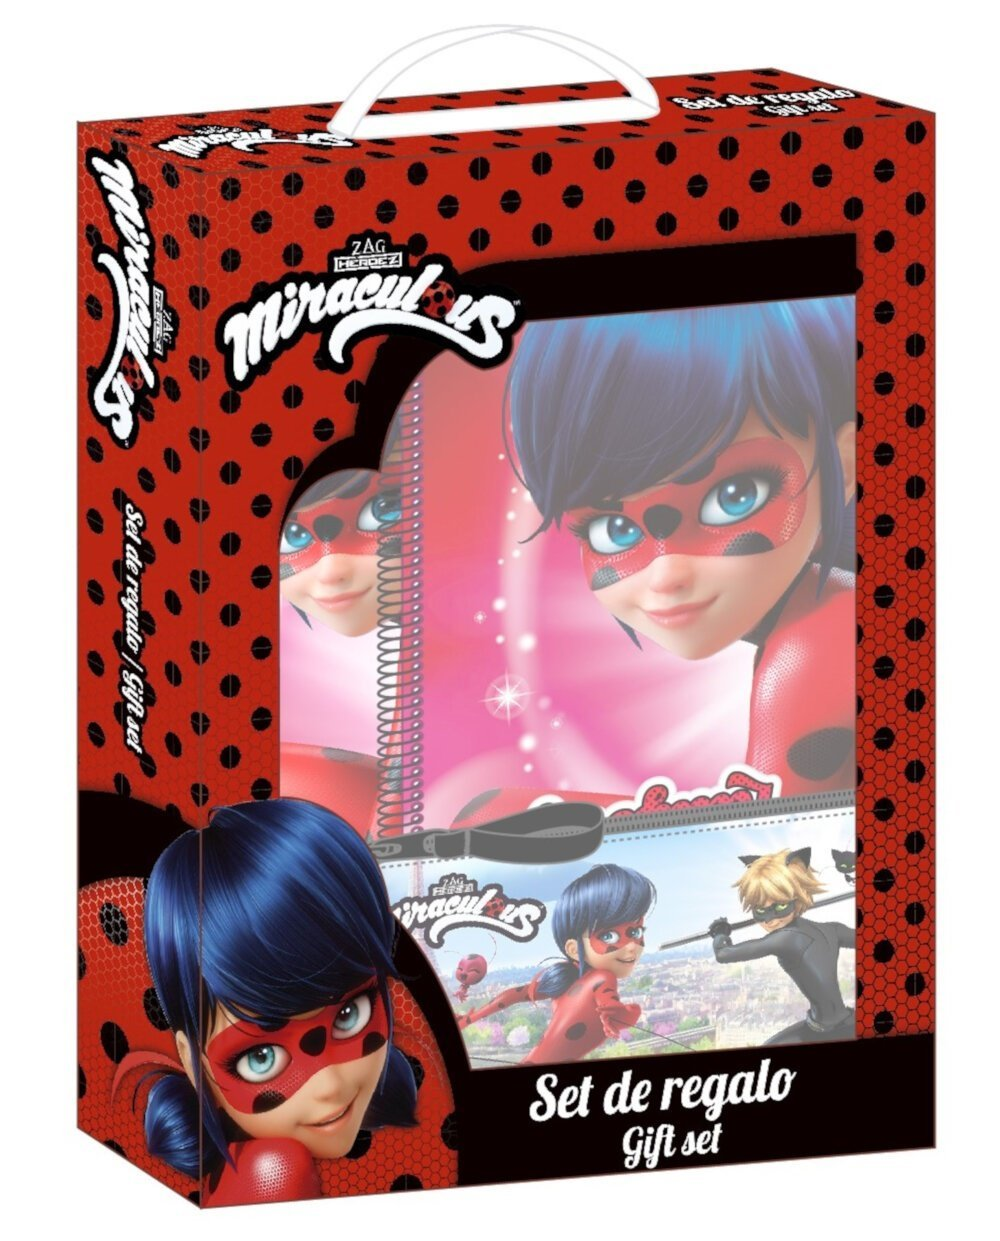 Ladybug & Cat Noir - Set de regalo: libreta, carpeta y estuche (Safta 311716587): Amazon.es: Hogar